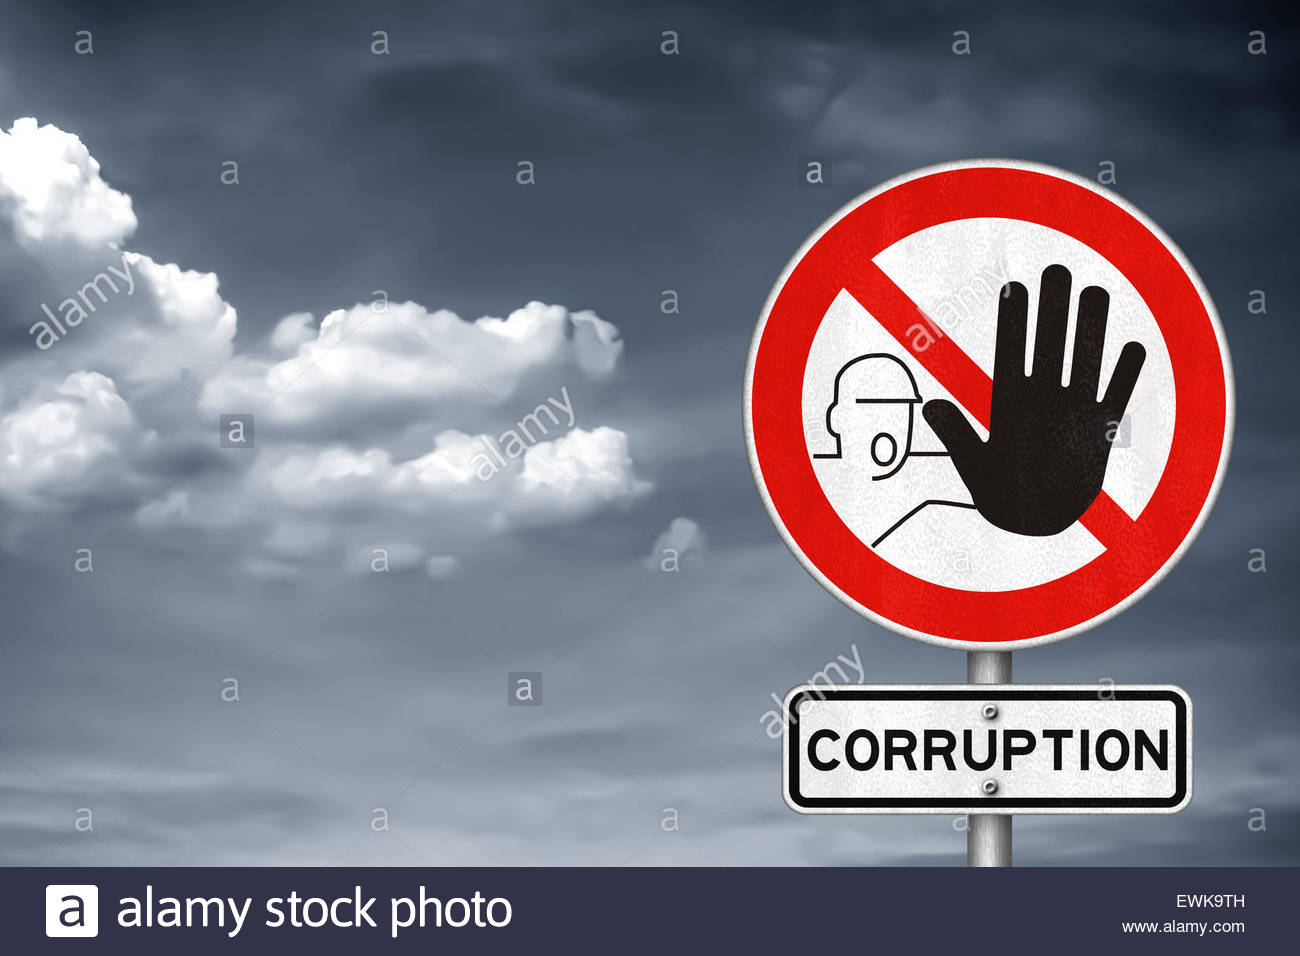 Stop with the corruption - Stock Image